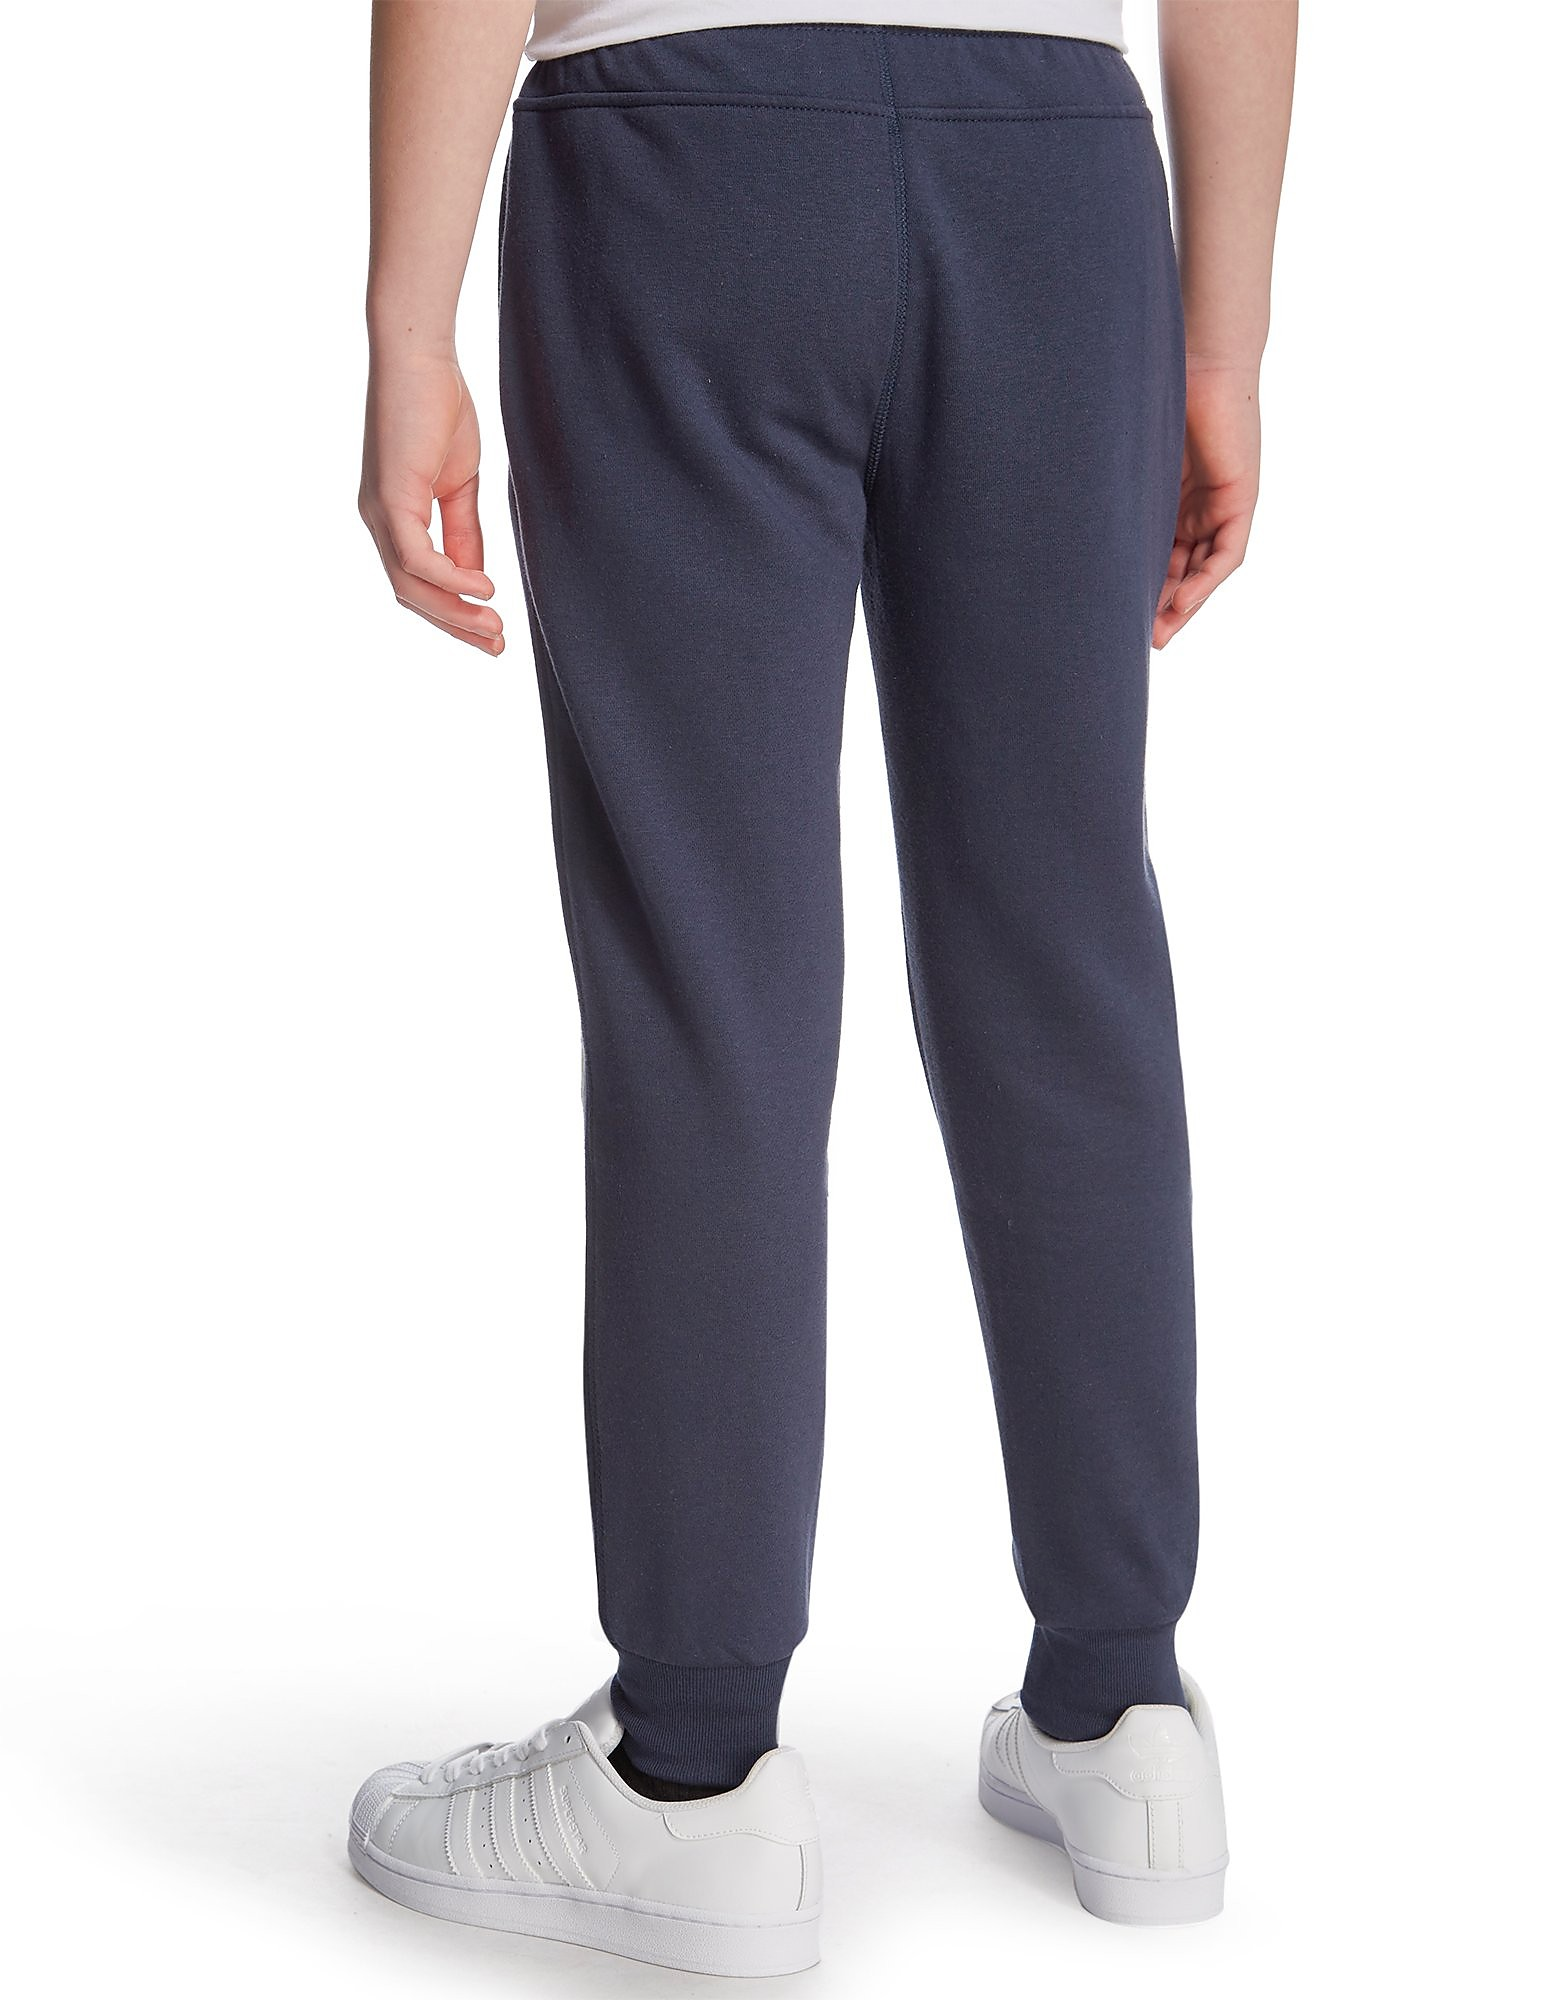 Carbrini Inferno Jogging Pants Junior